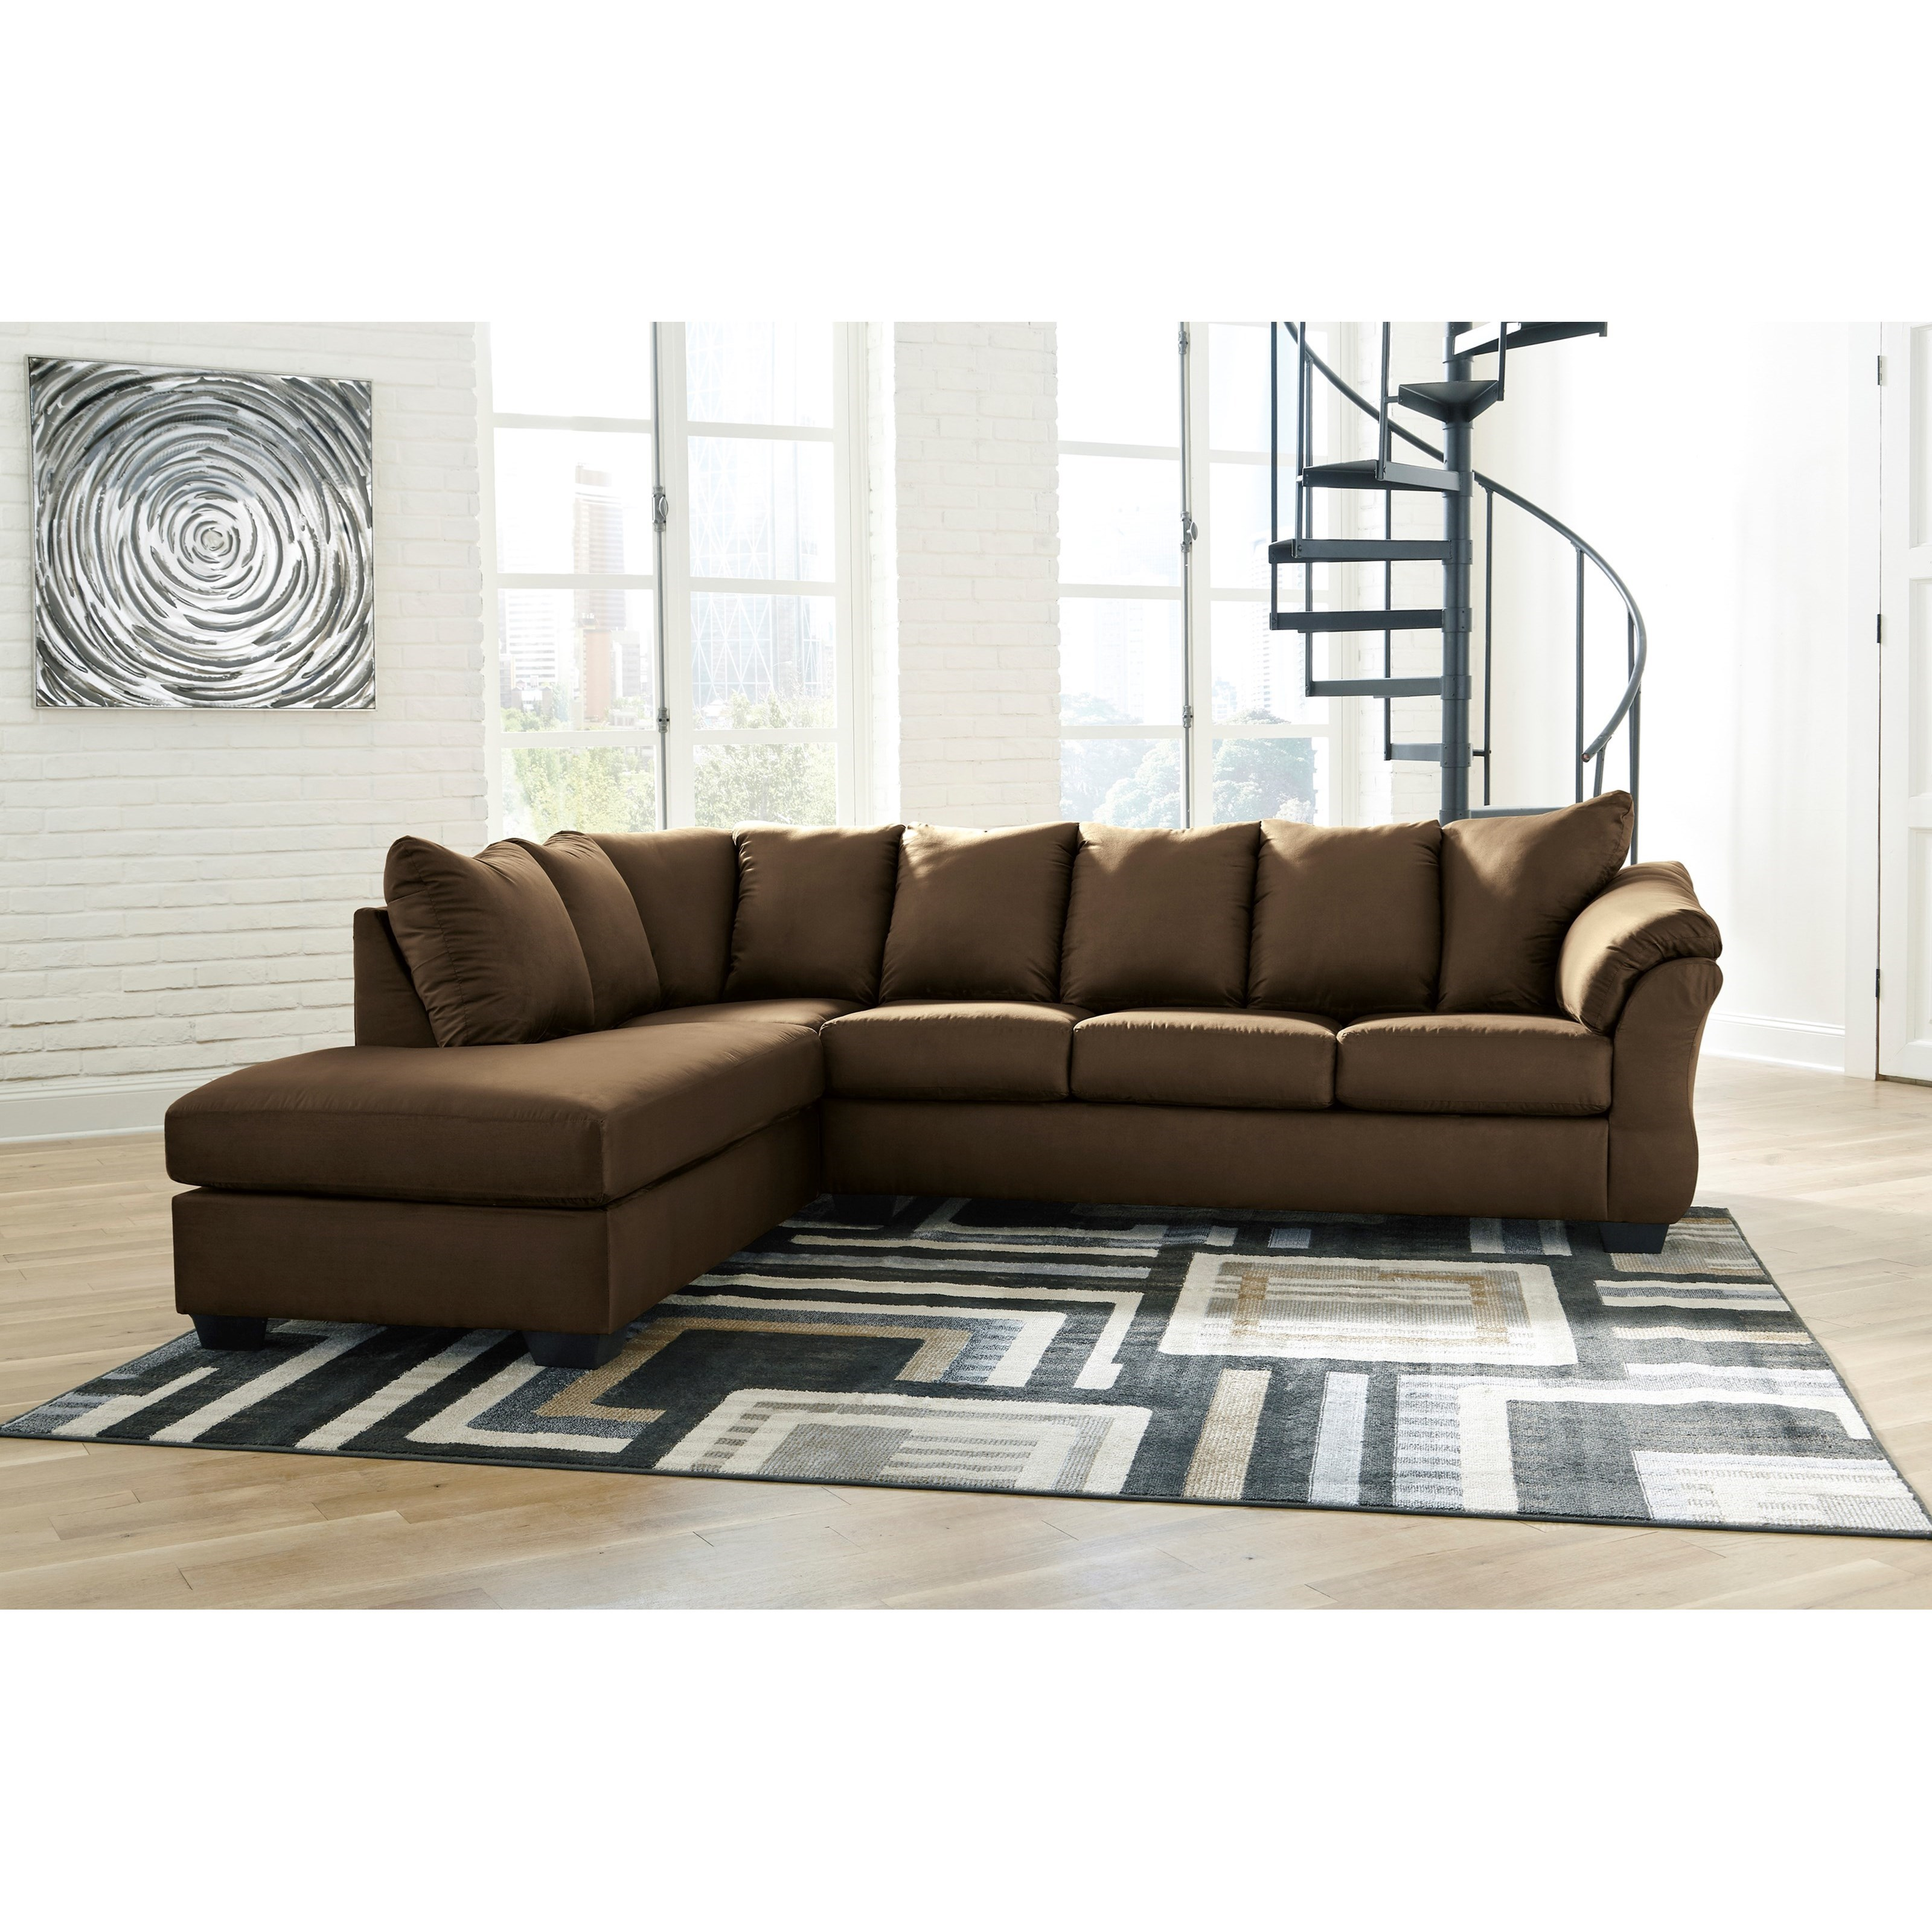 Darcy Corner Sofa House Of Fraser: Contemporary 2-Piece Sectional Sofa With Left Chaise By